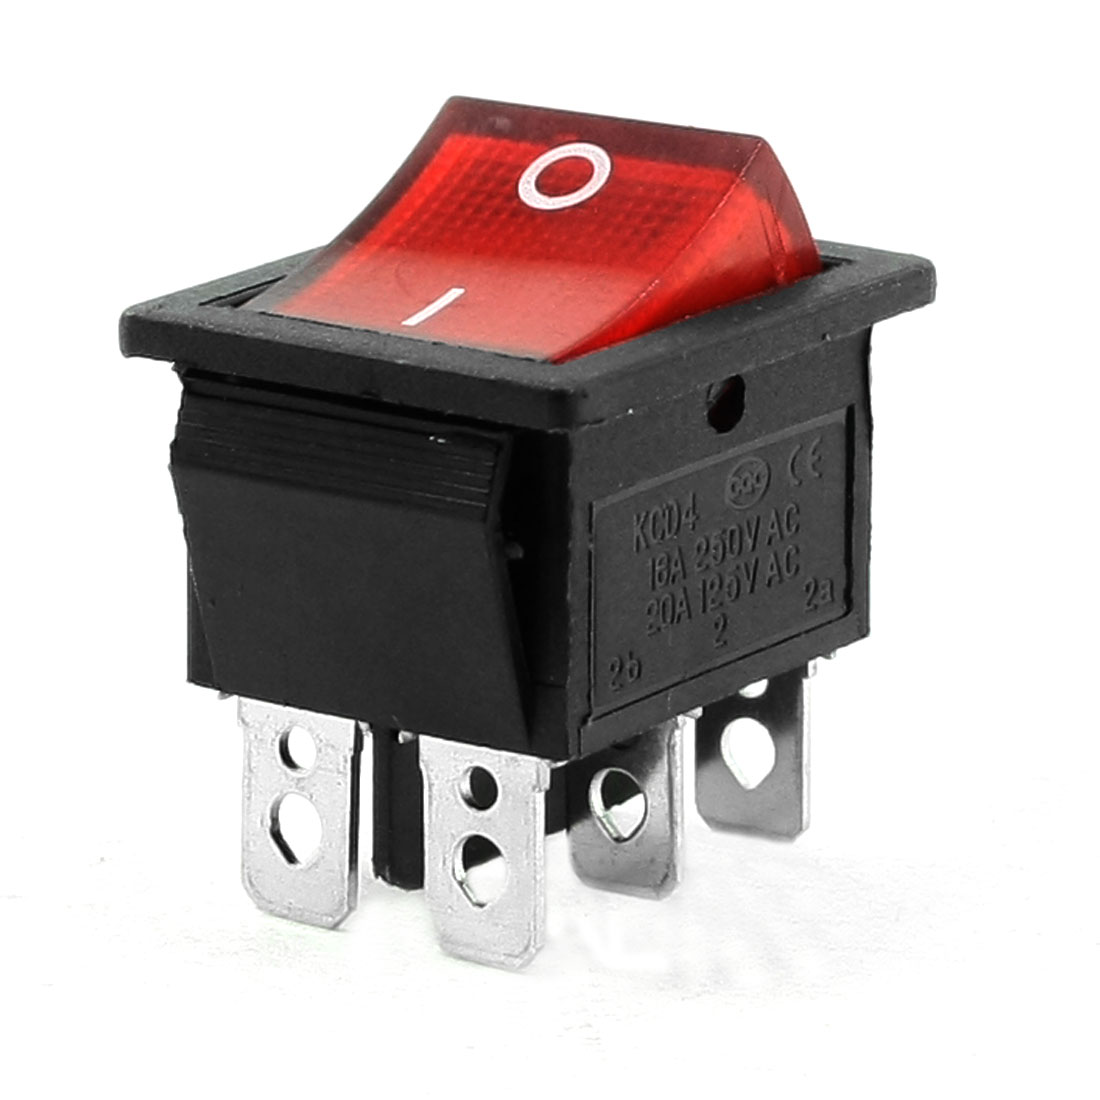 18A 250VAC 20A 125VAC 2 Position 6 Pin Red Light ON/OFF DPDT Boat Rocker Switch